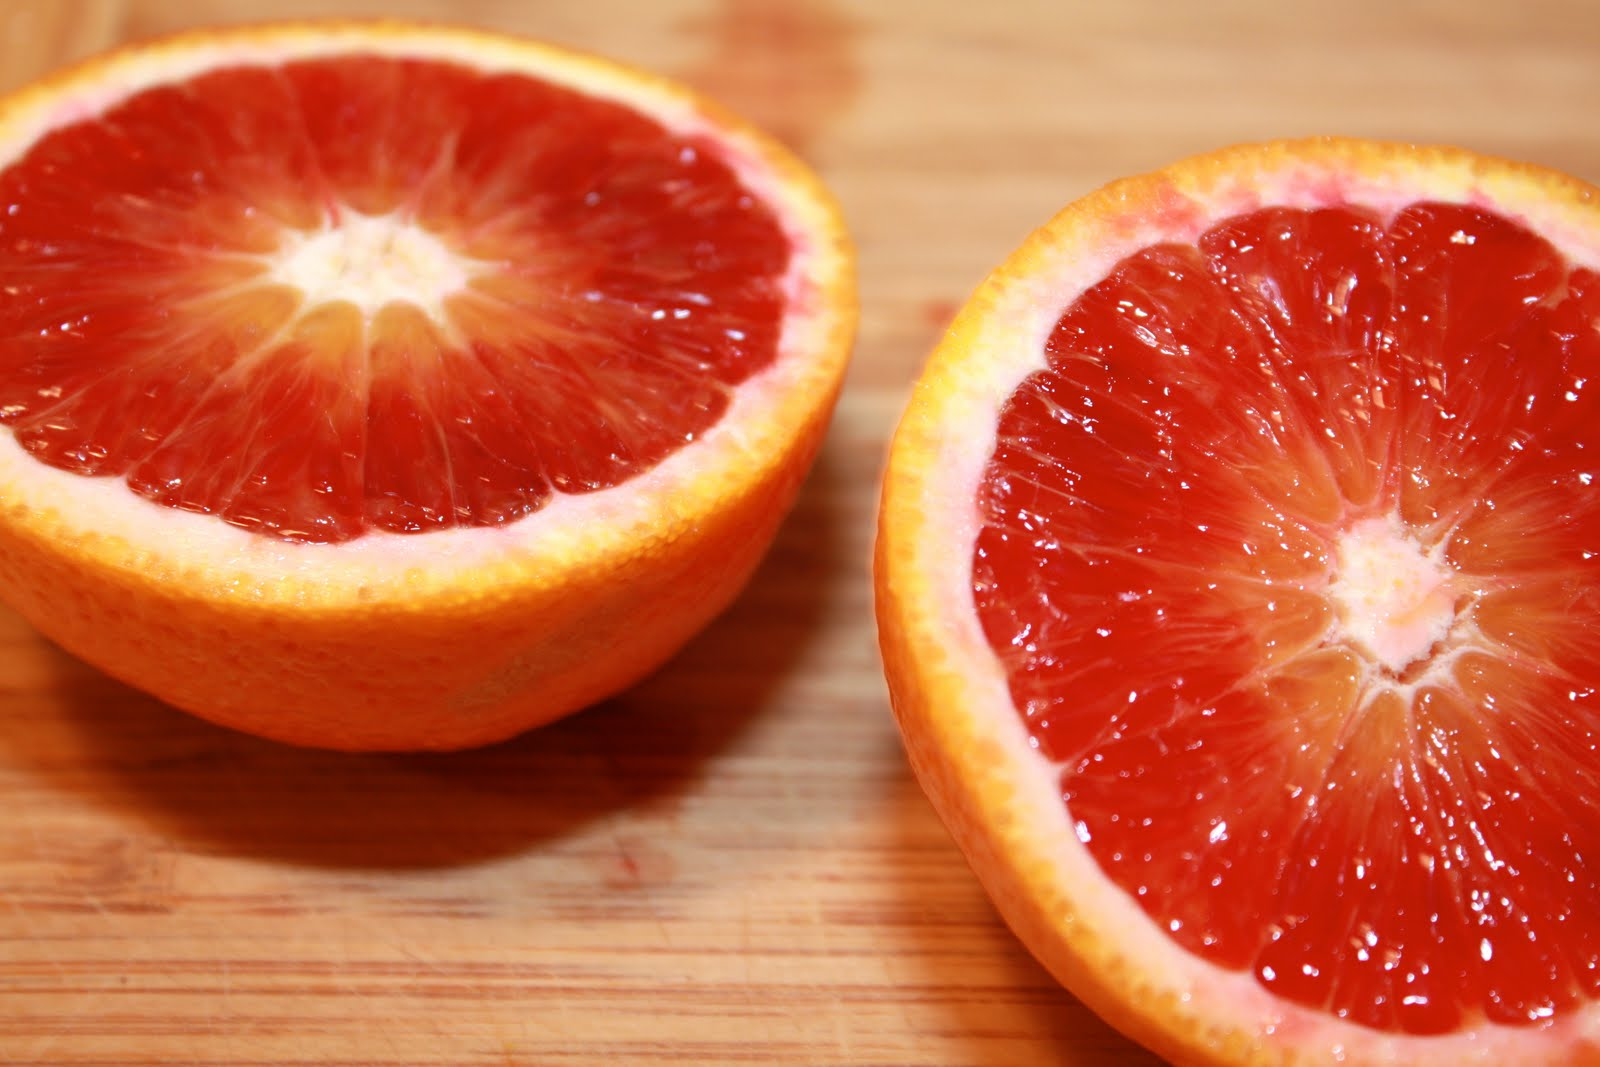 Blood oranges are in season right now. Haven't tried them yet ...